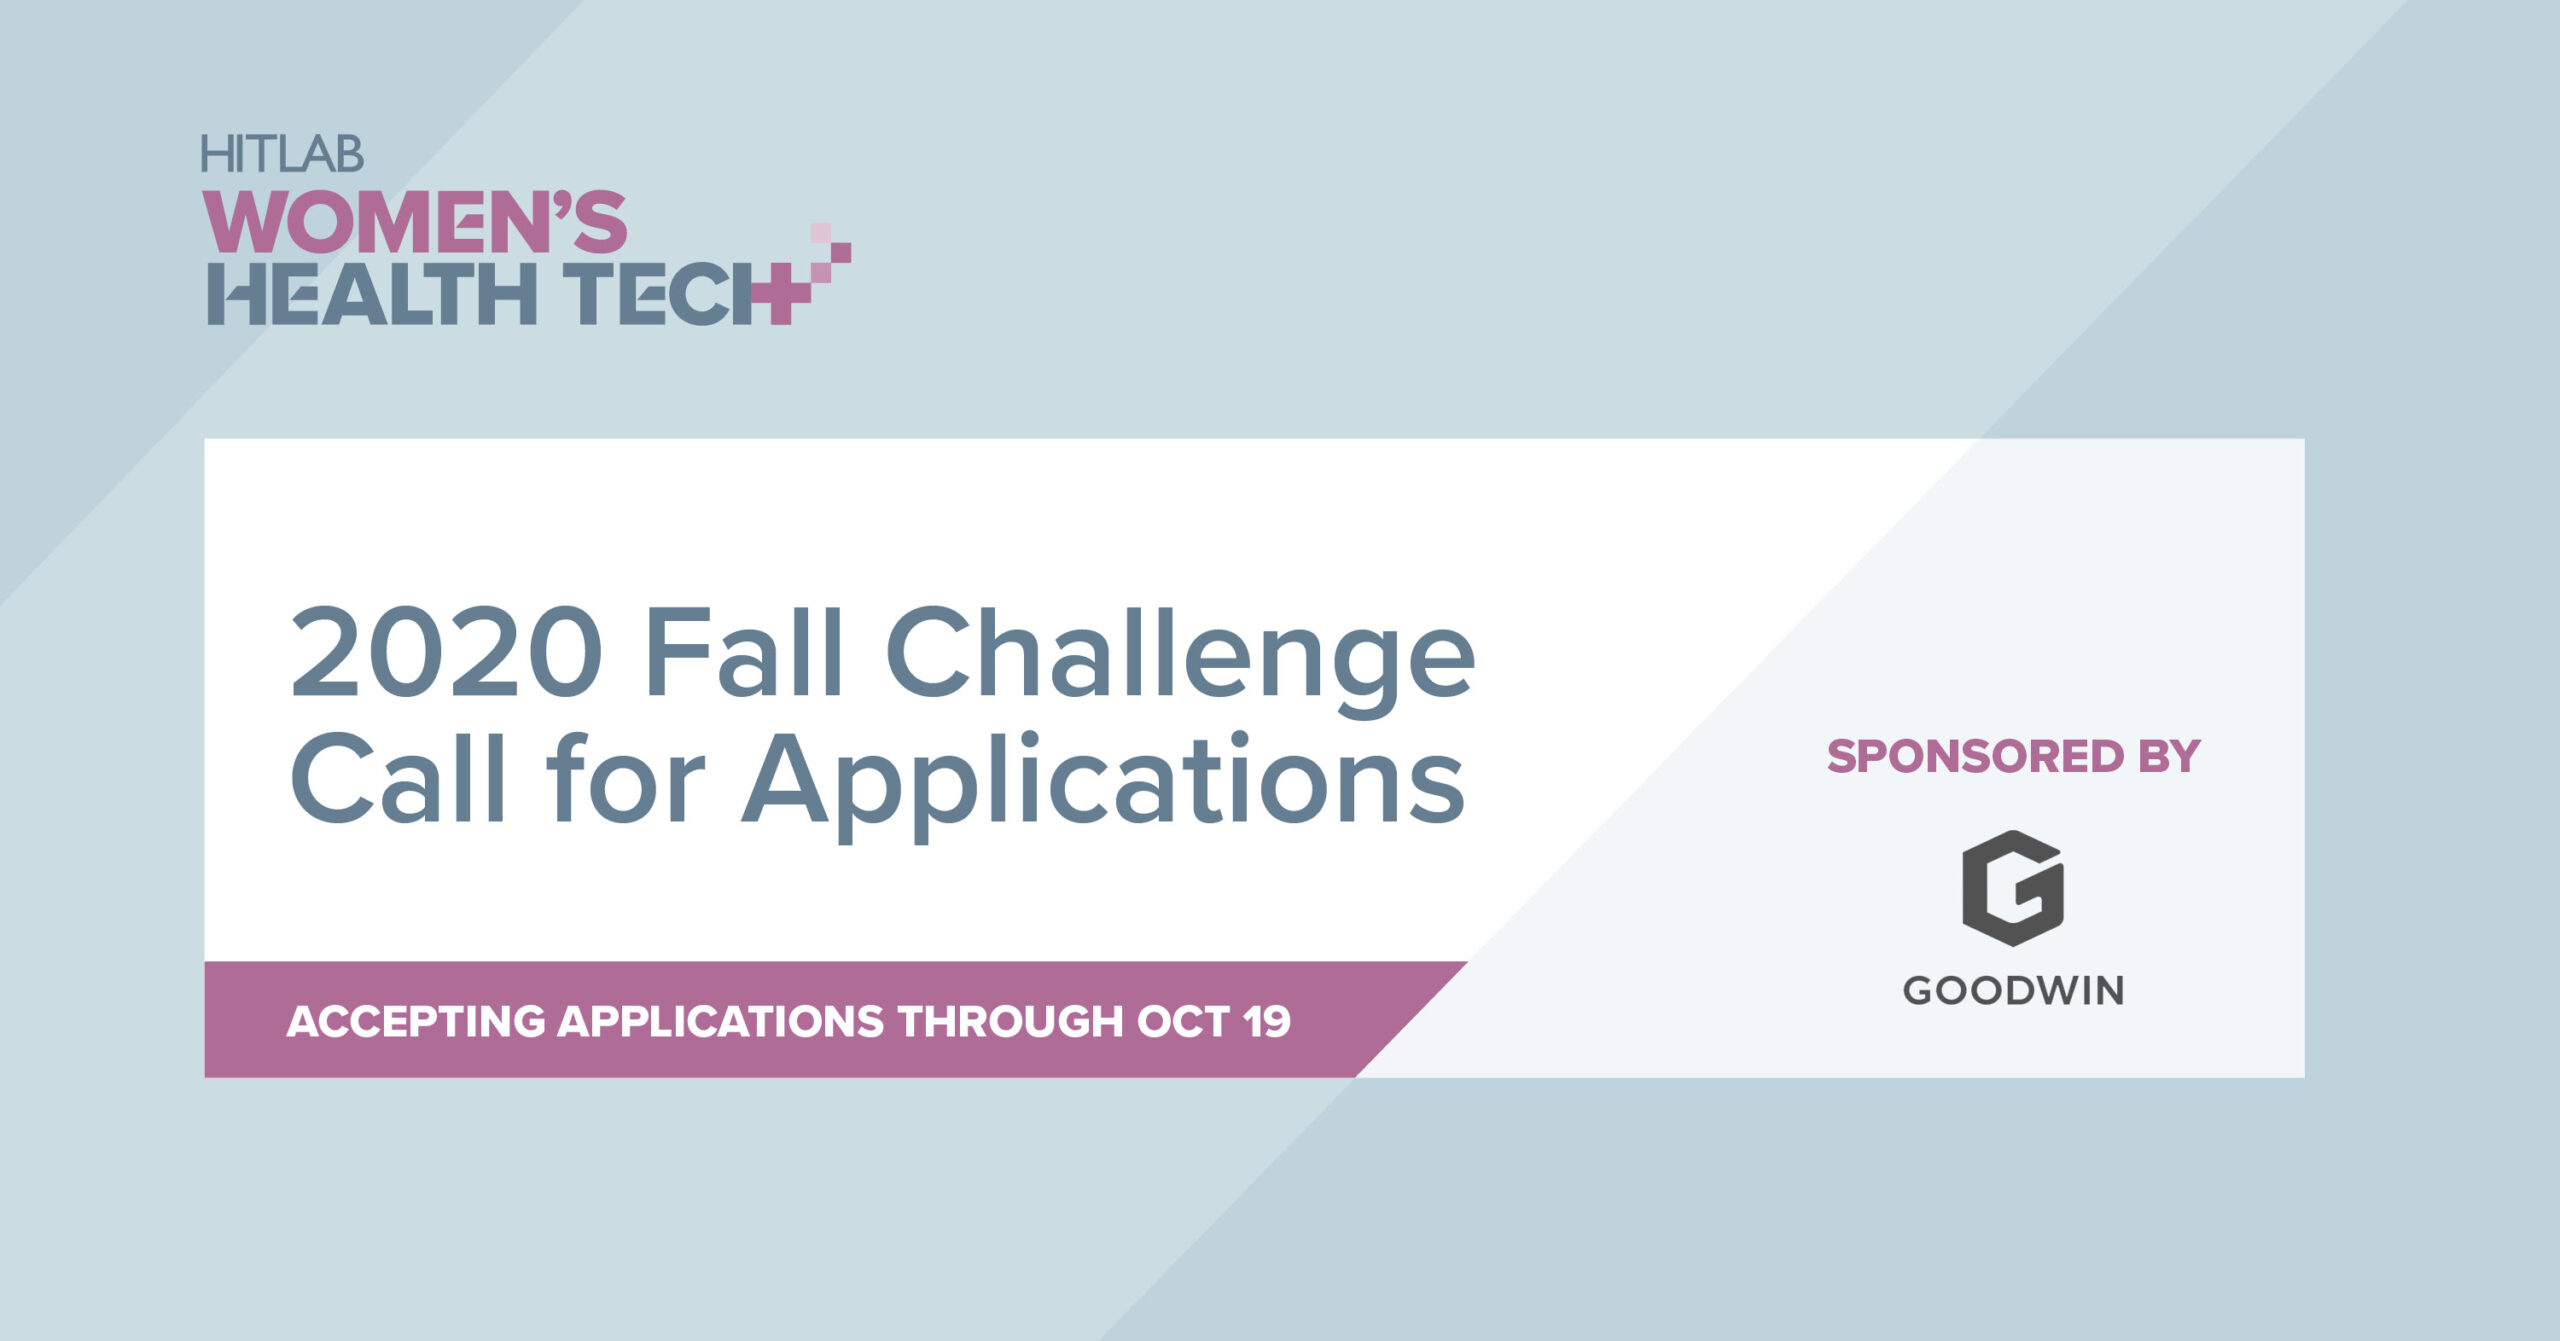 HITLAB Women's Health Tech 2020 Fall Challenge for Innovators (up to $10,000)